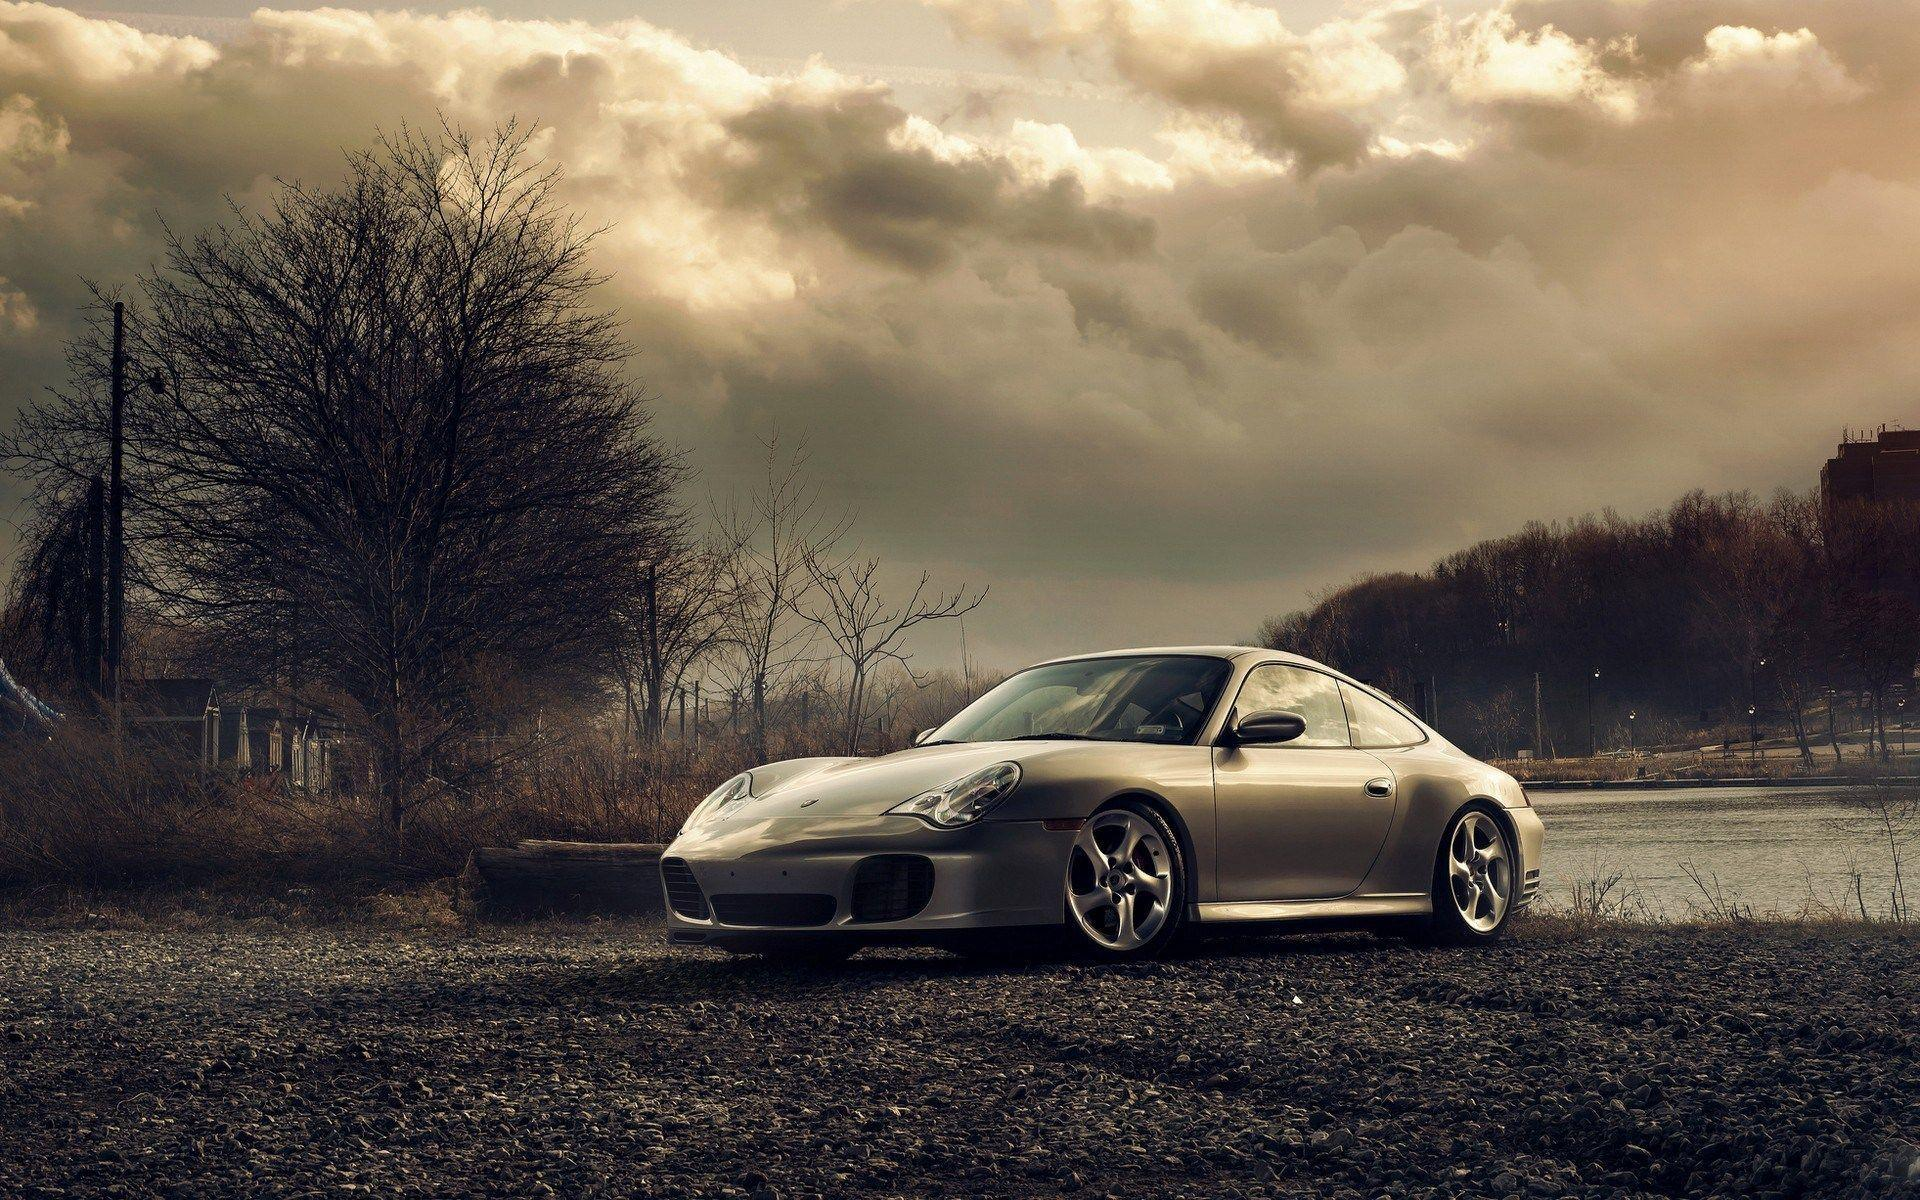 porsche 911 wallpapers full hd wallpaper search - Porsche 911 Wallpaper Widescreen